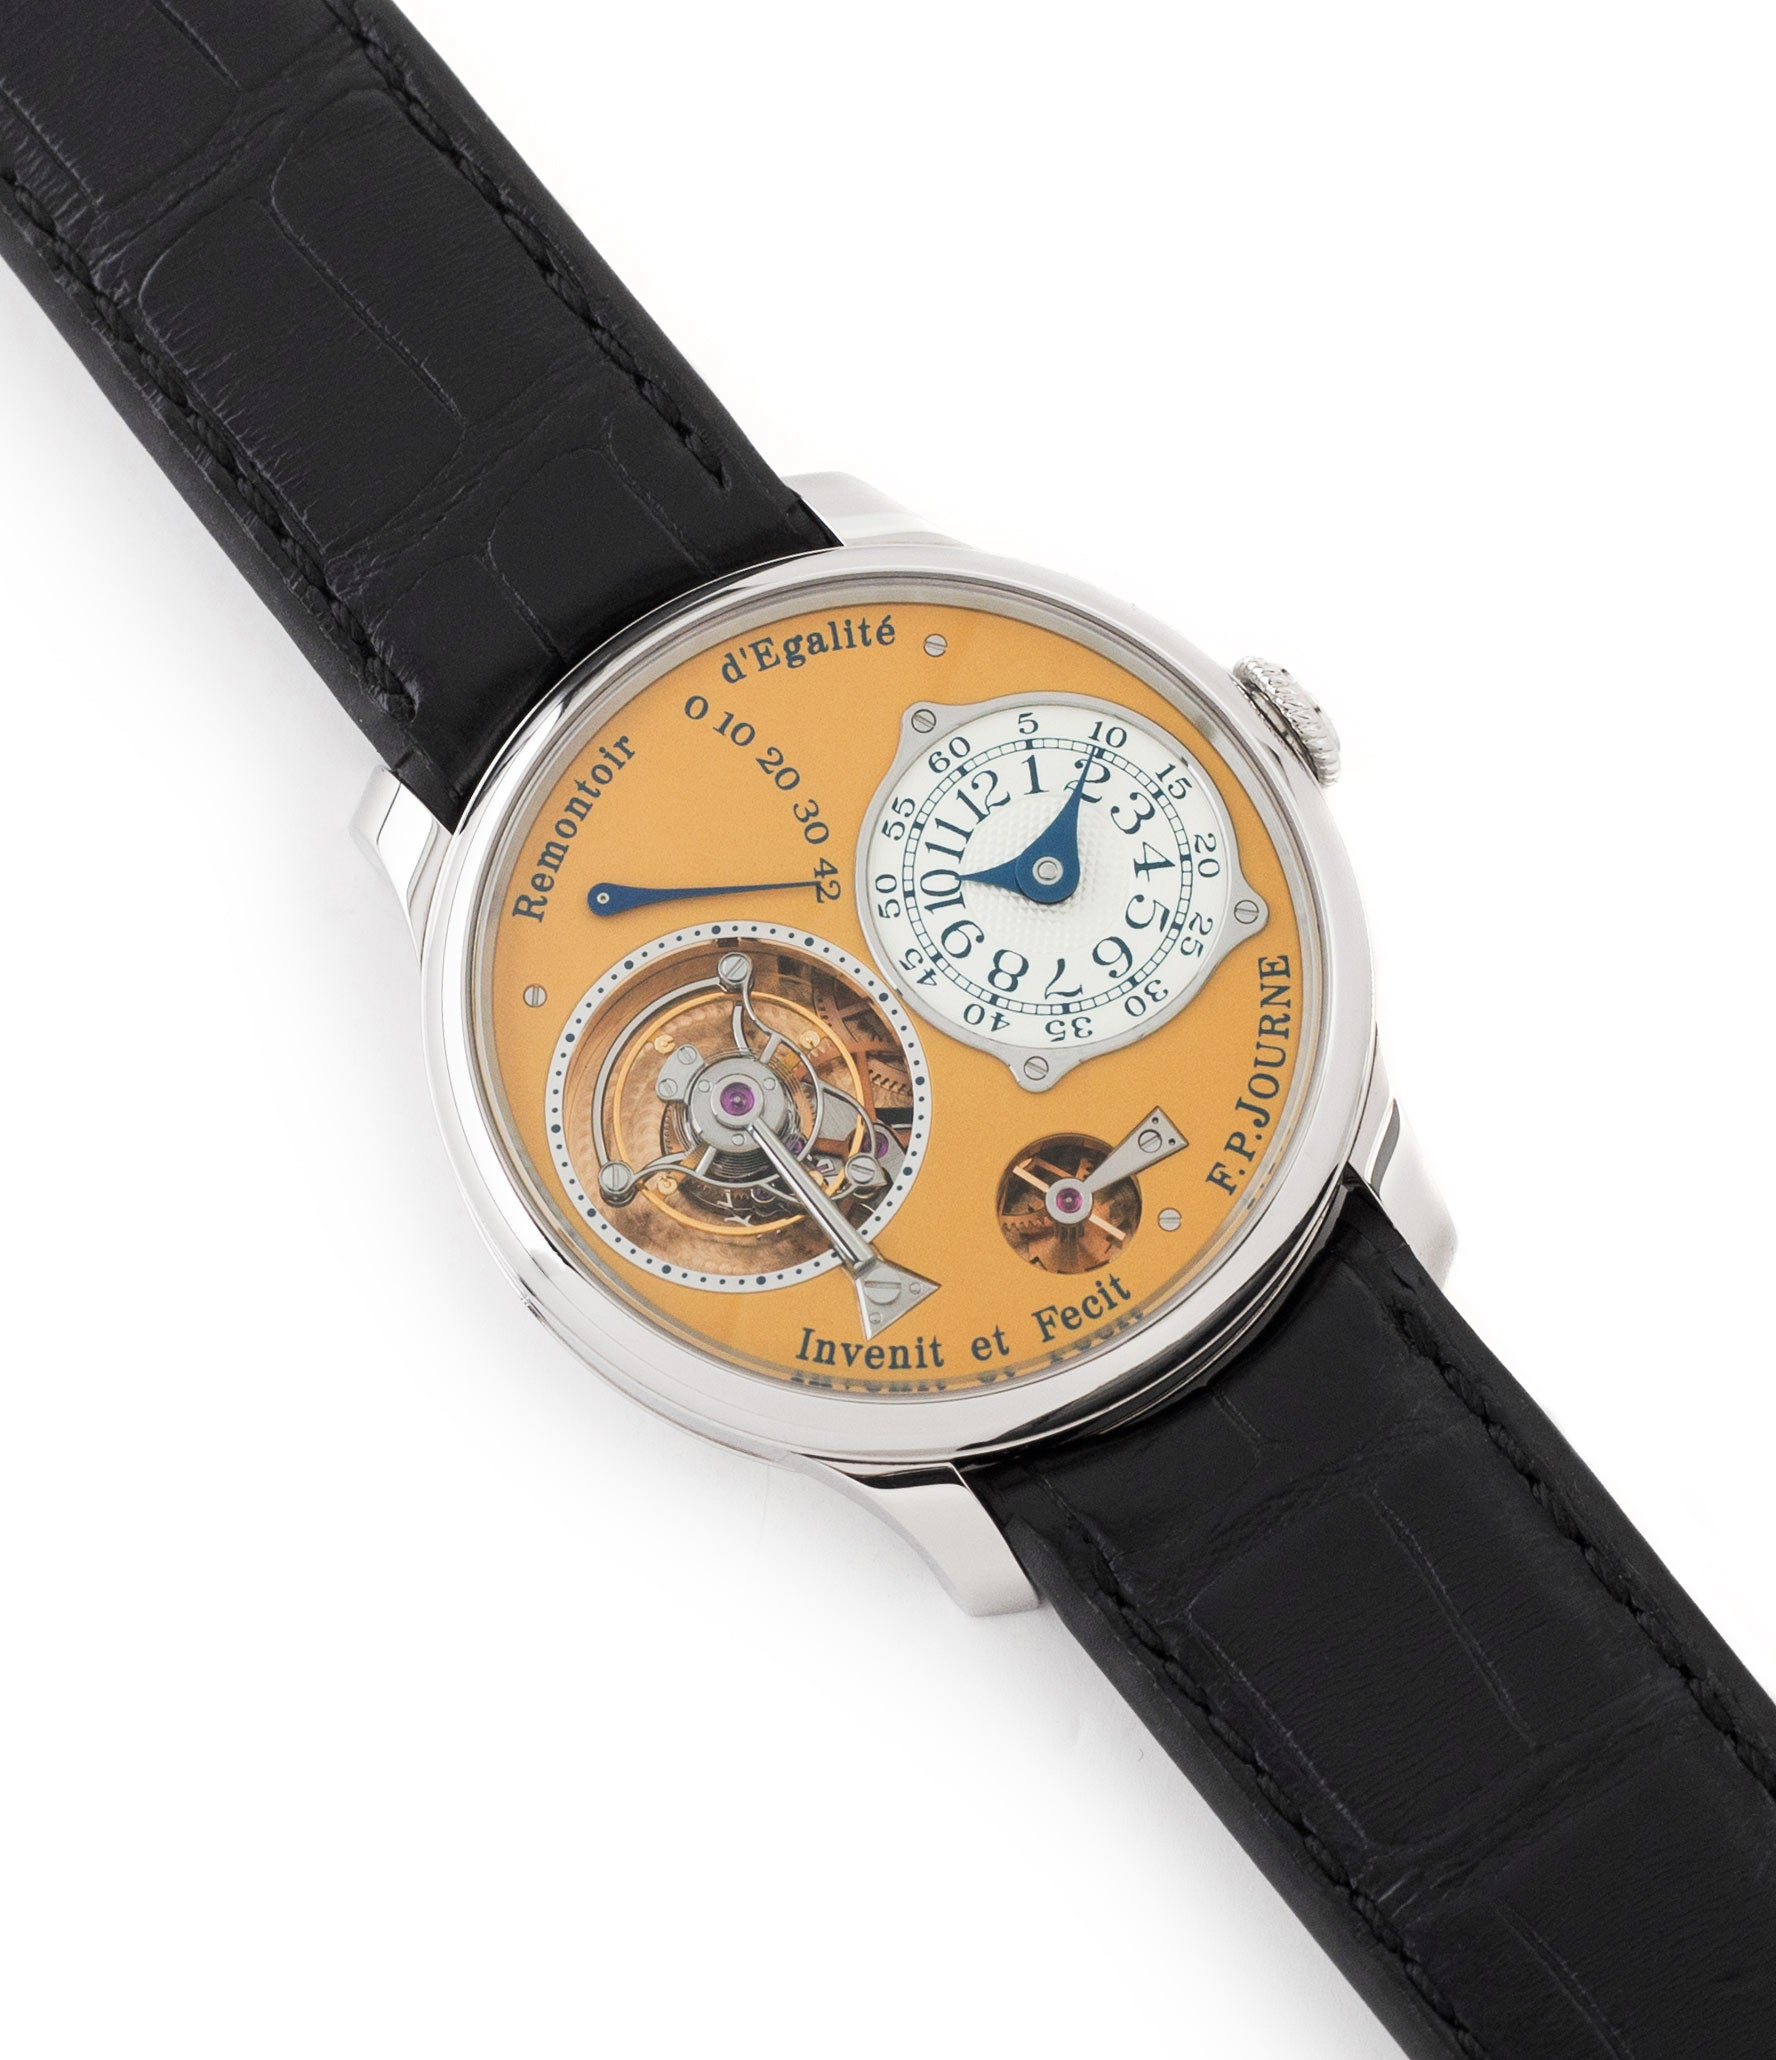 buy preowned F. P. Journe Tourbillon Souverain 38 mm steel dress watch for sale online at A Collected Man London UK approved seller of independent watchmakers